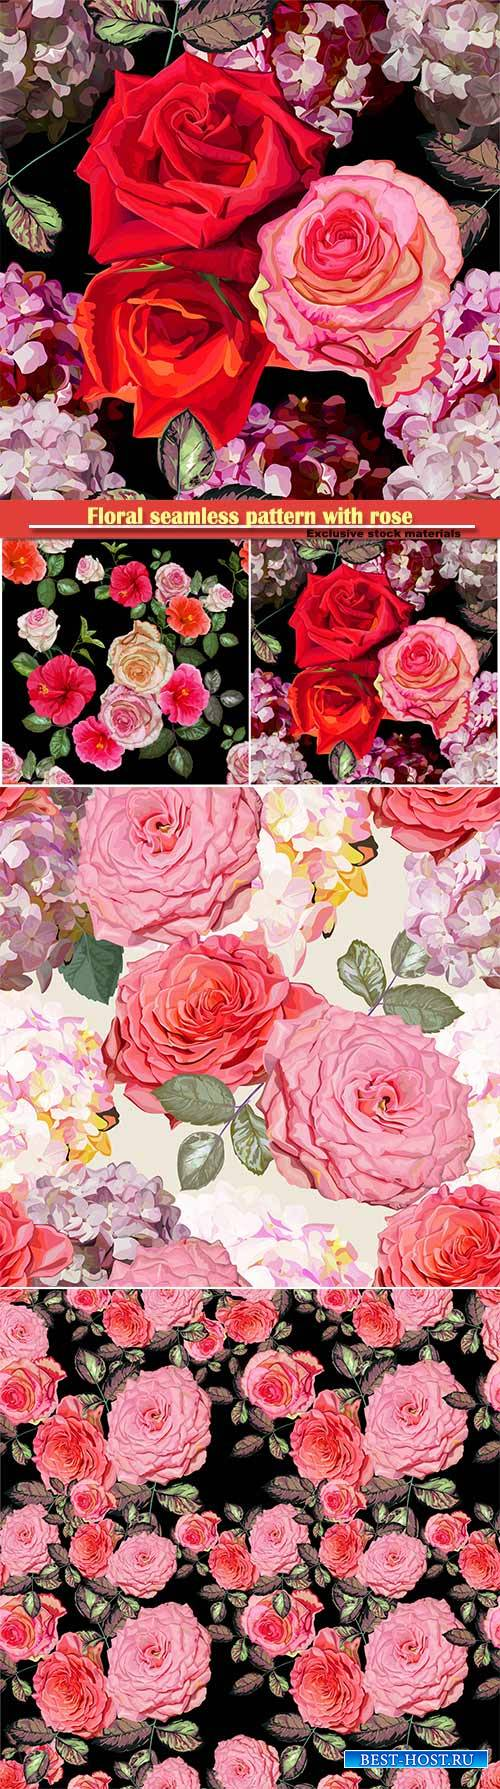 Floral seamless pattern with rose and hydrangea vector illustration